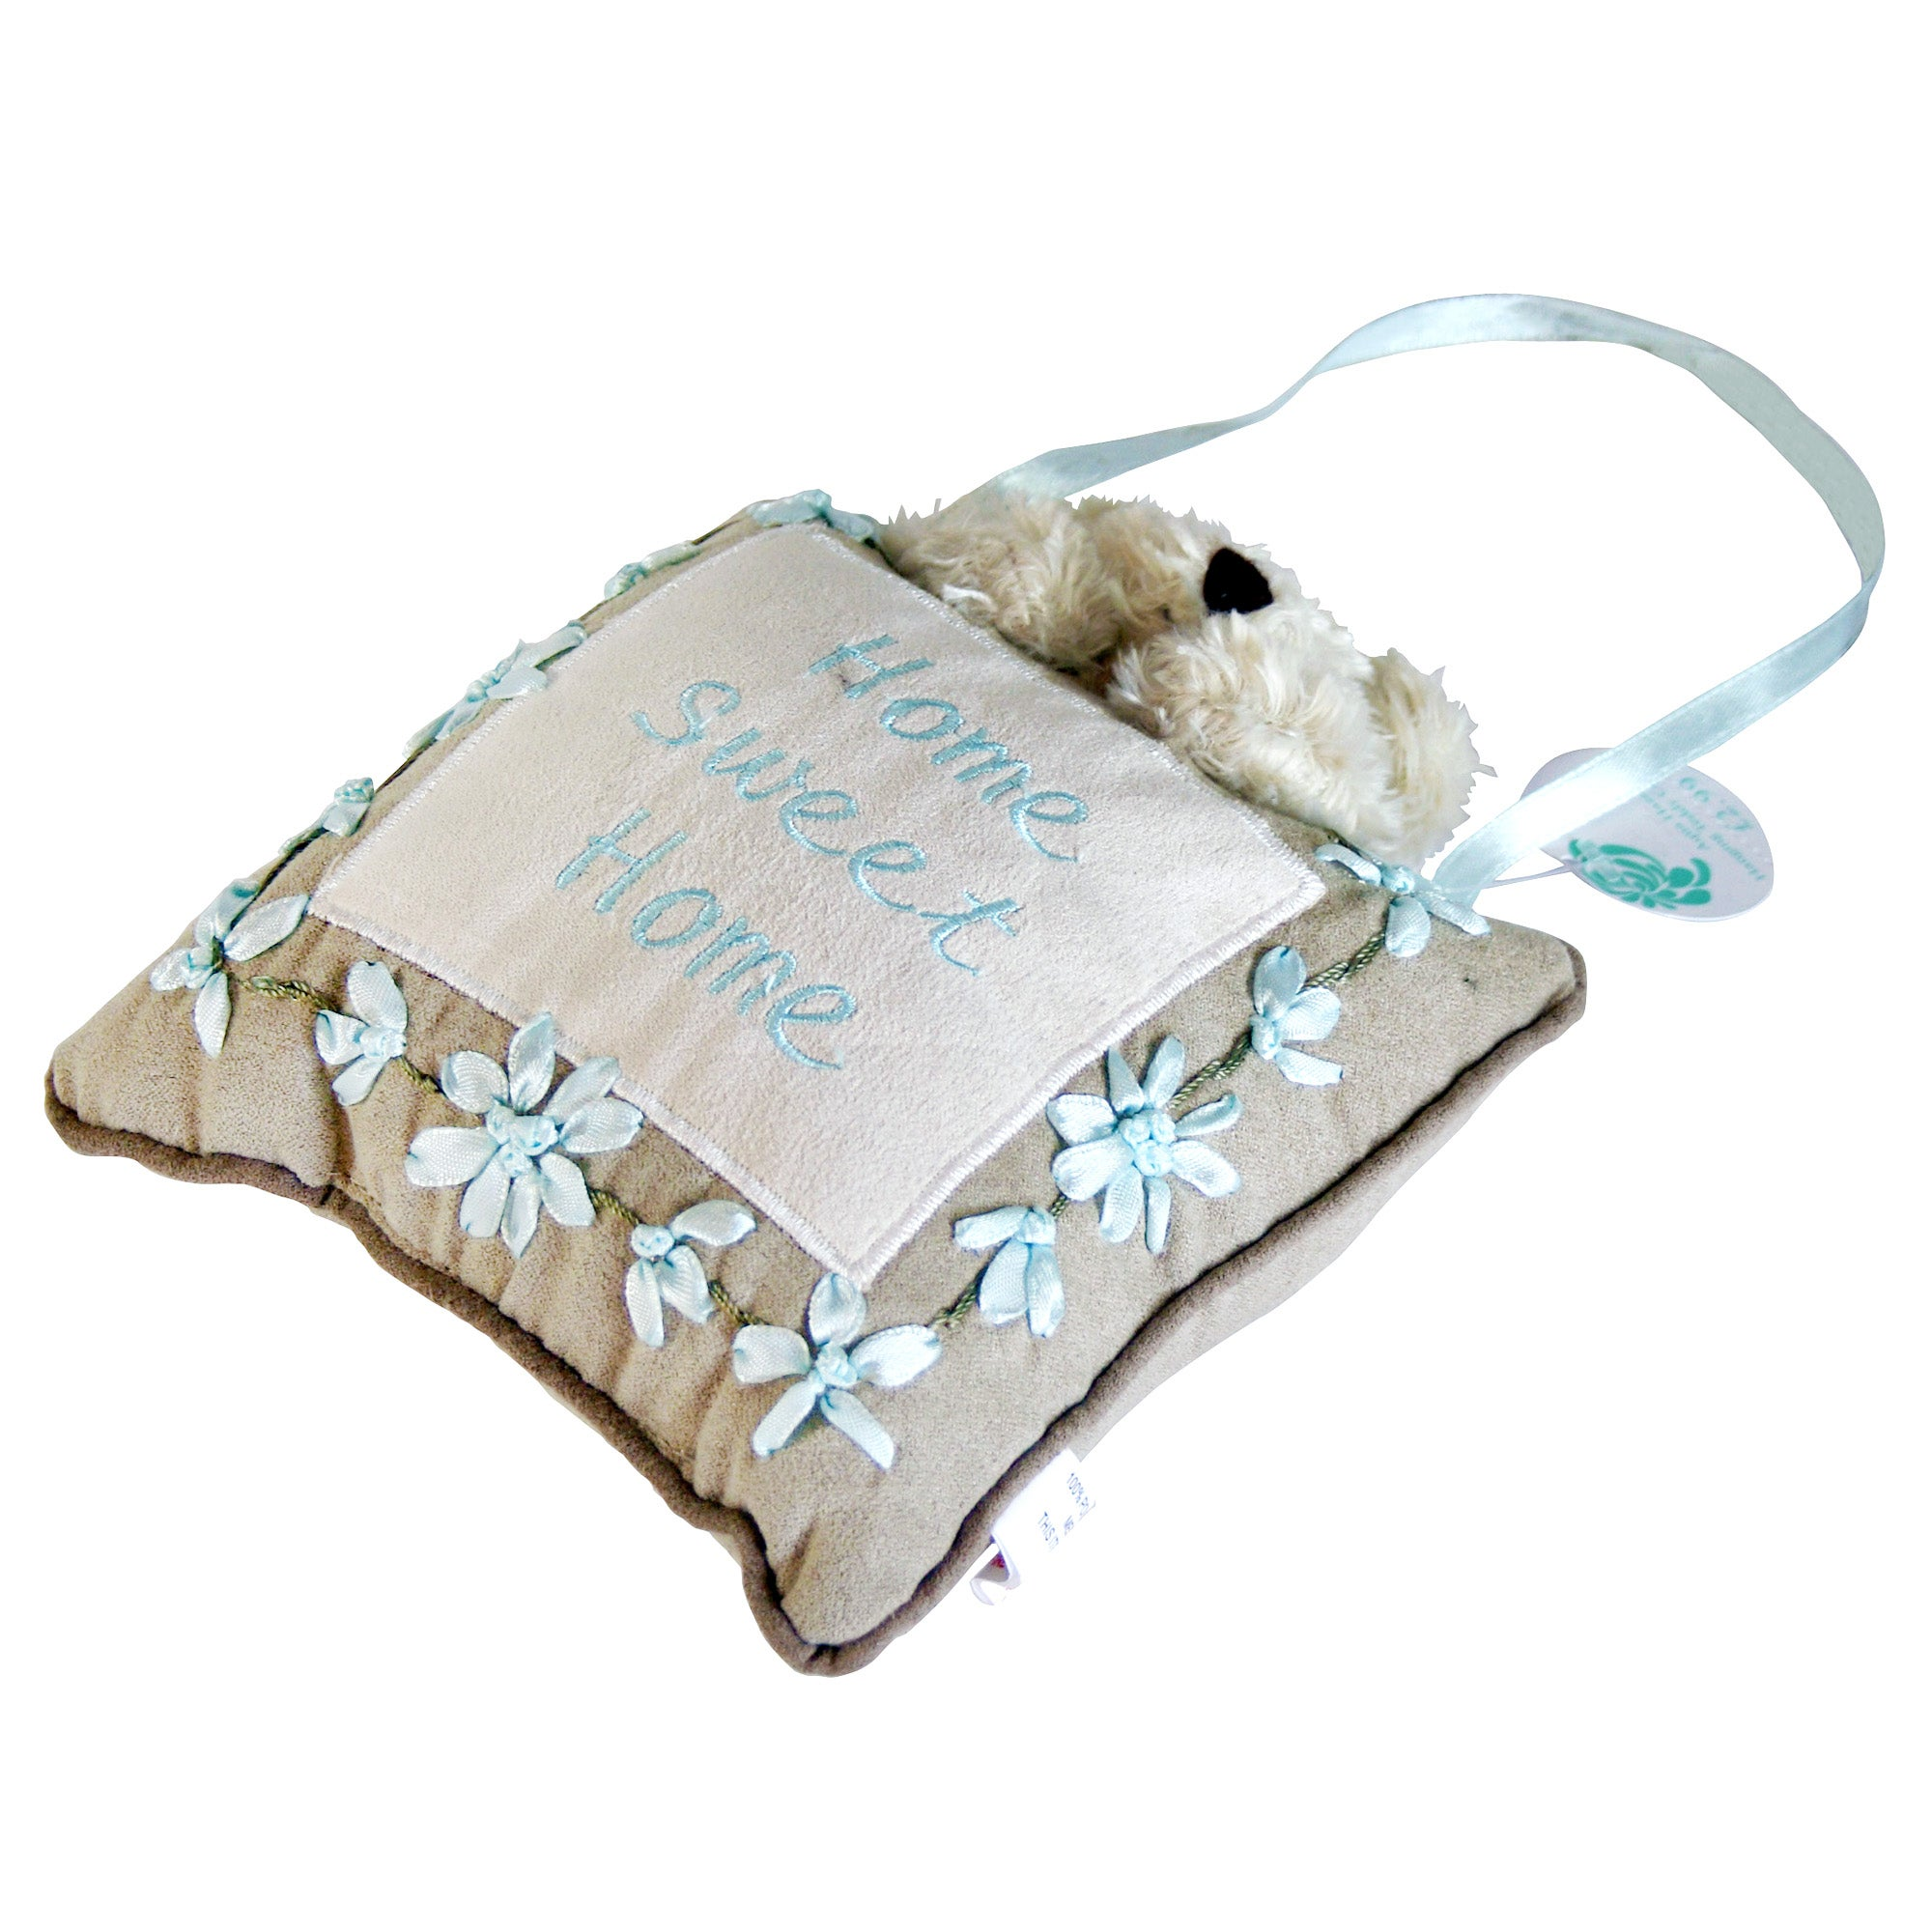 Aqua Haze Hanging Teddy Cushion